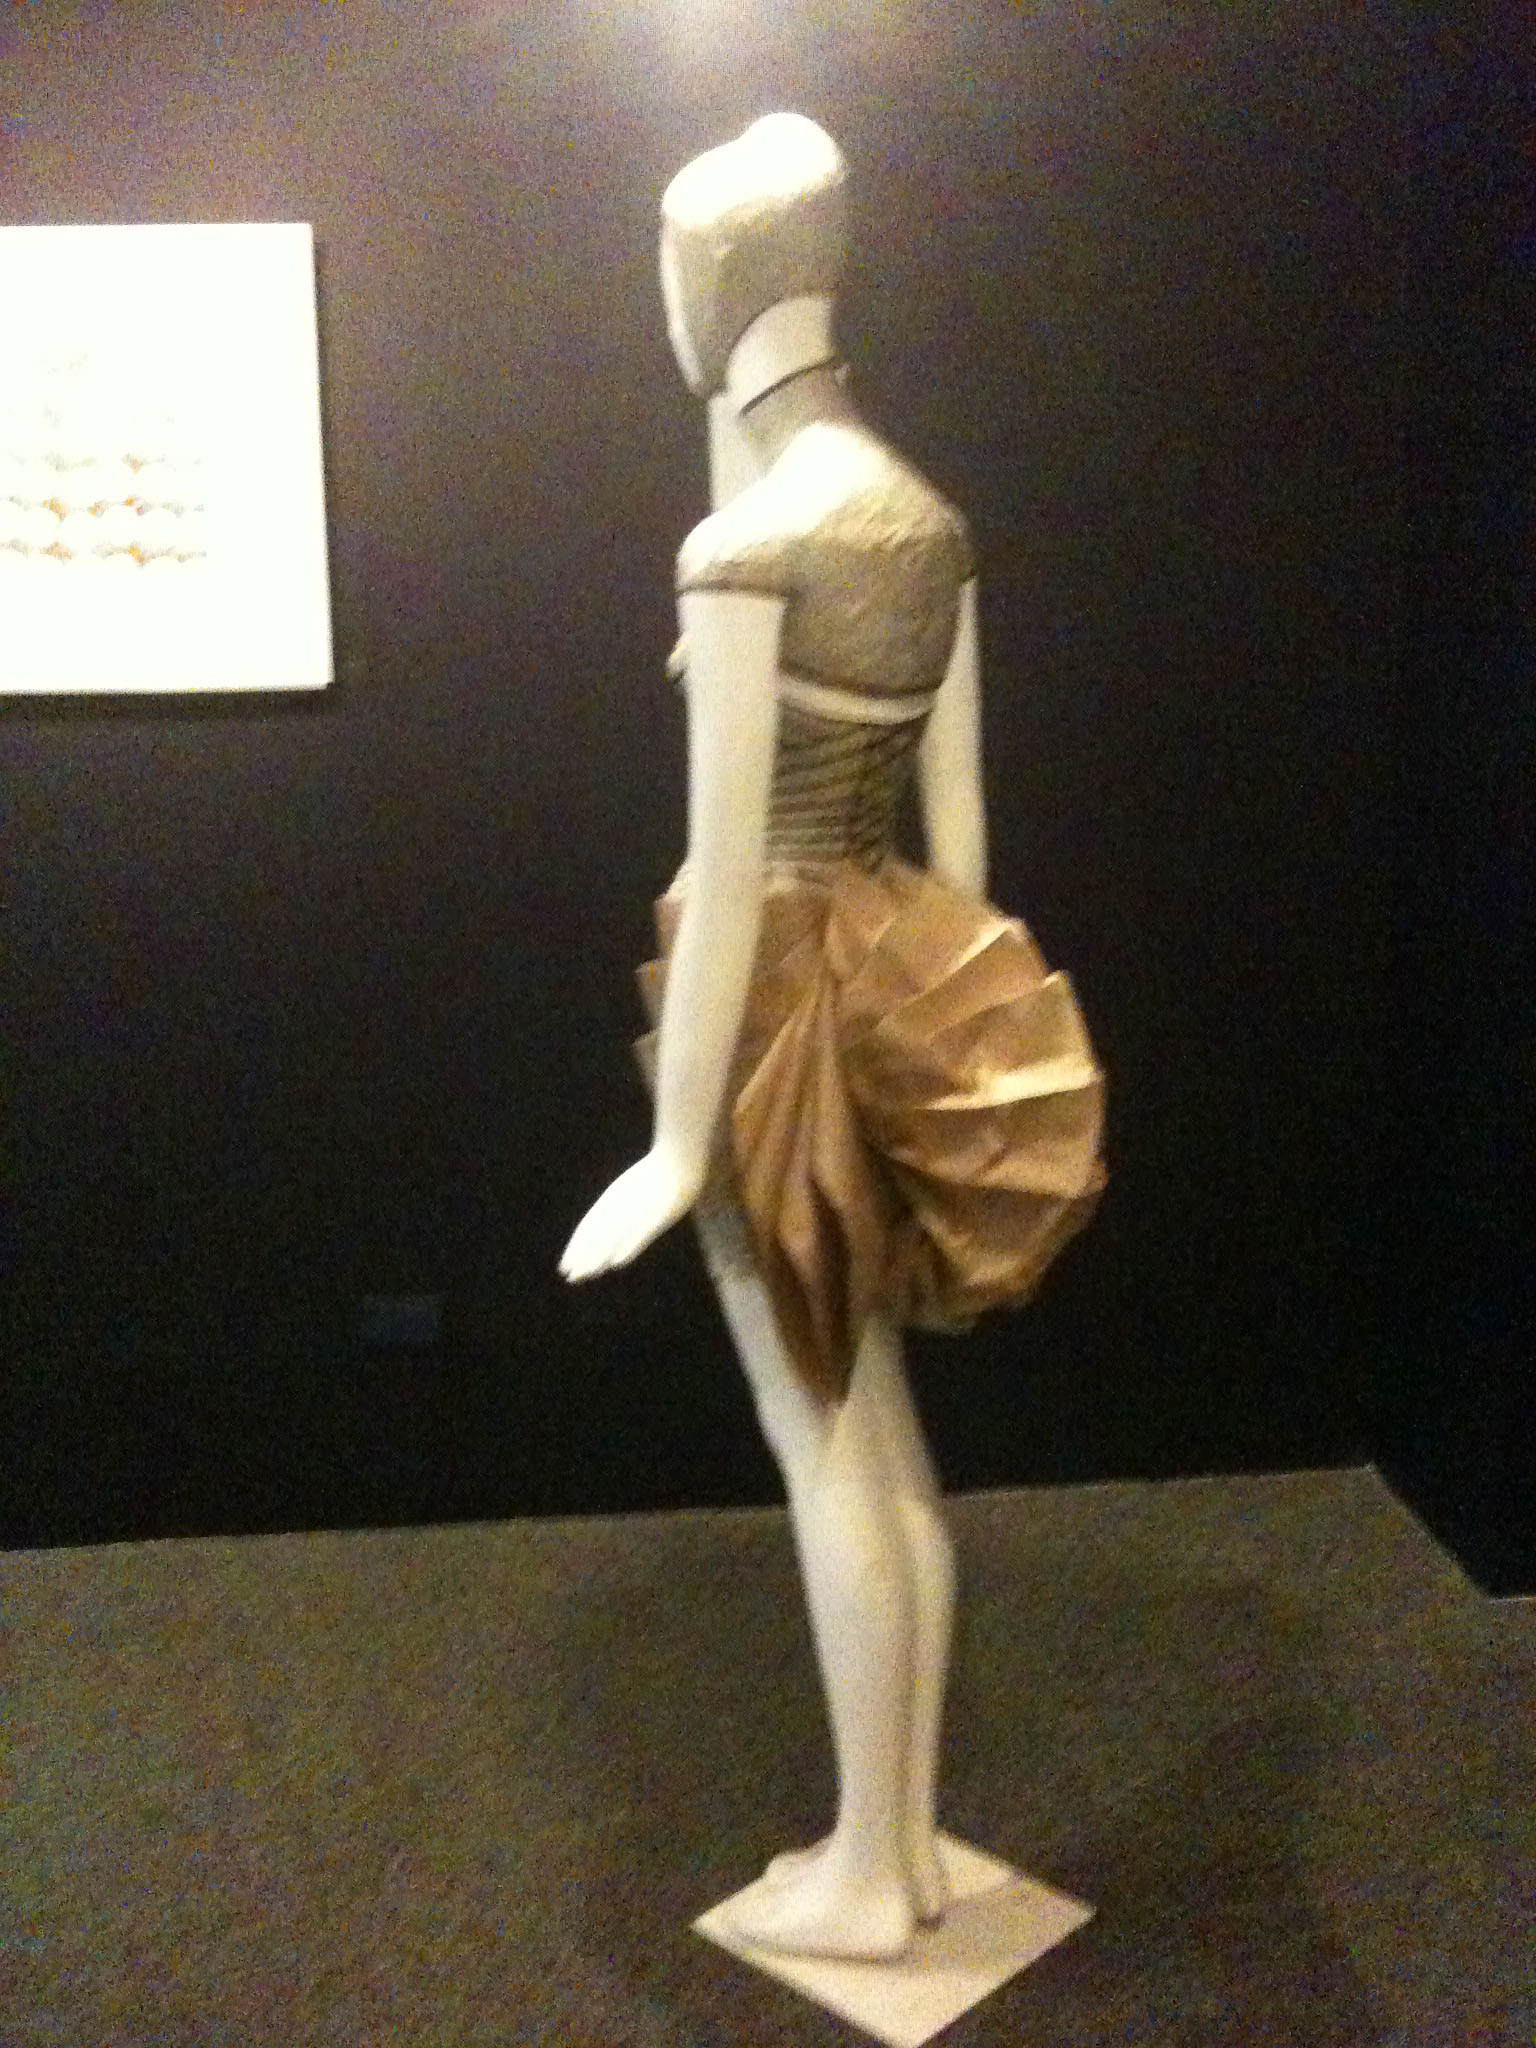 """One of the paper designs on show at Yuchengco Museum's exhibition """"Art in Paper"""". Image property of Art Radar Journal."""